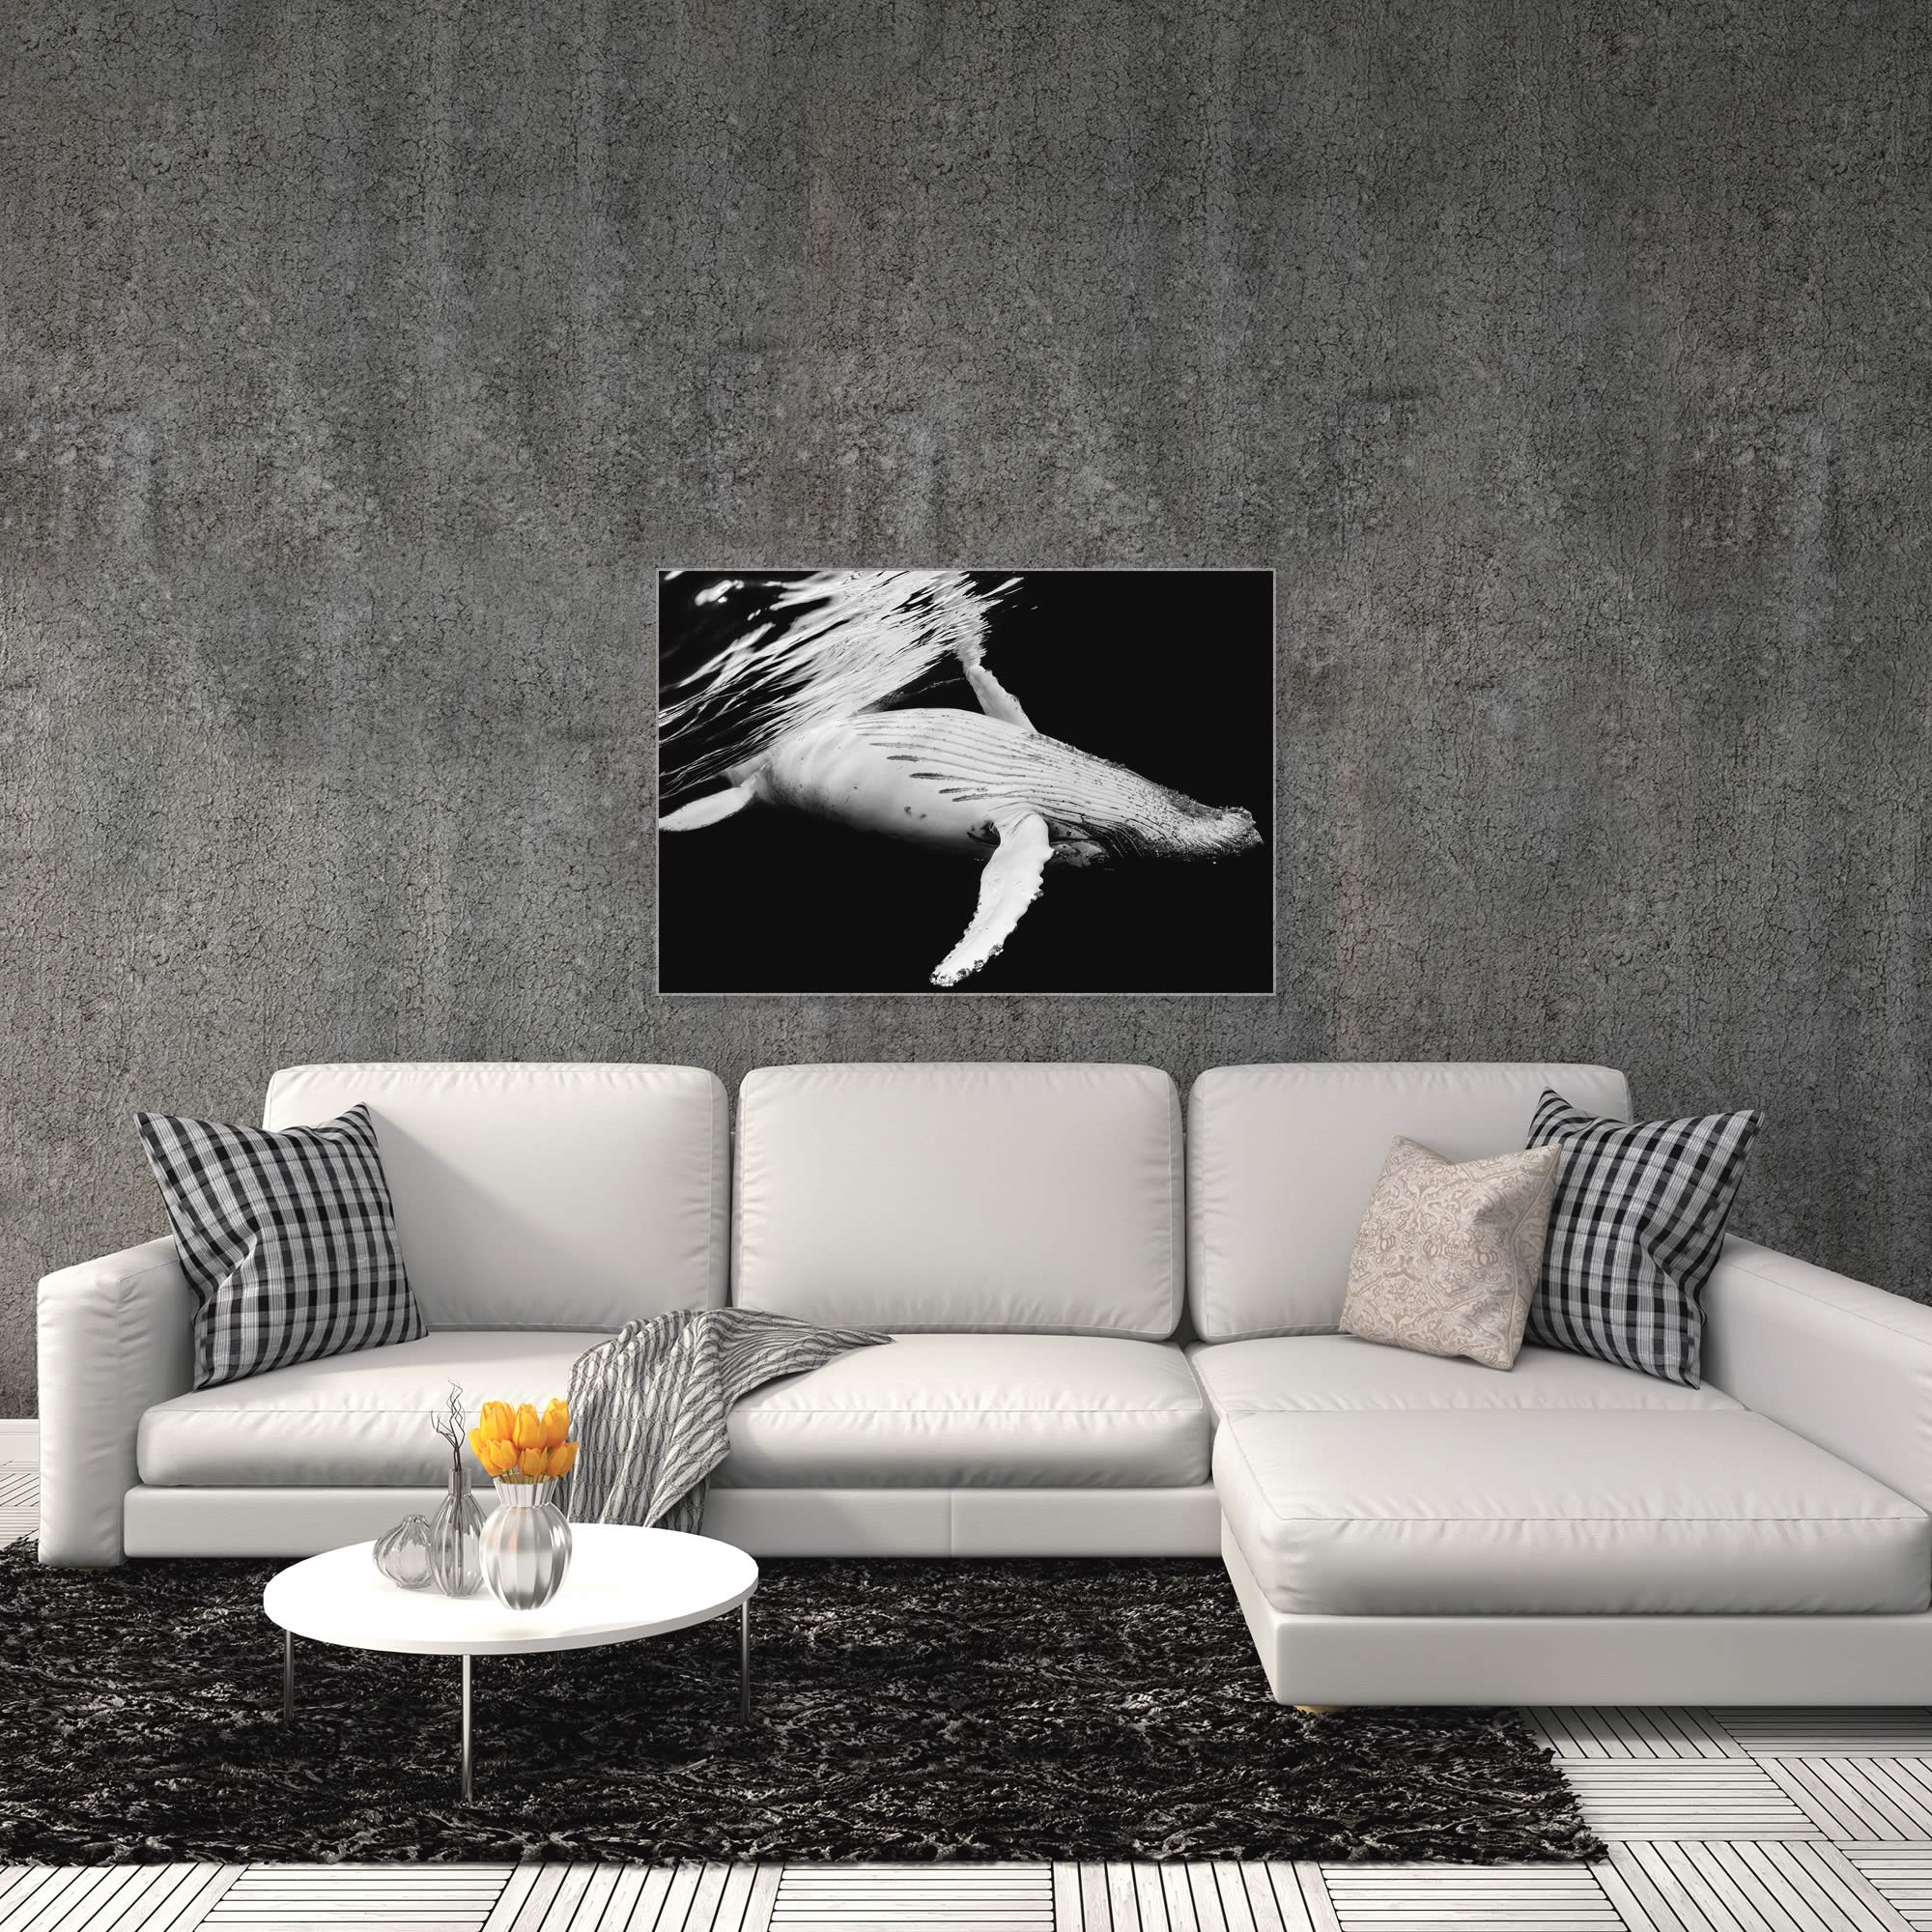 Black and White Whale by Barathieu Gabriel - Contemporary Whale Art on Metal or Acrylic - Alternate View 3